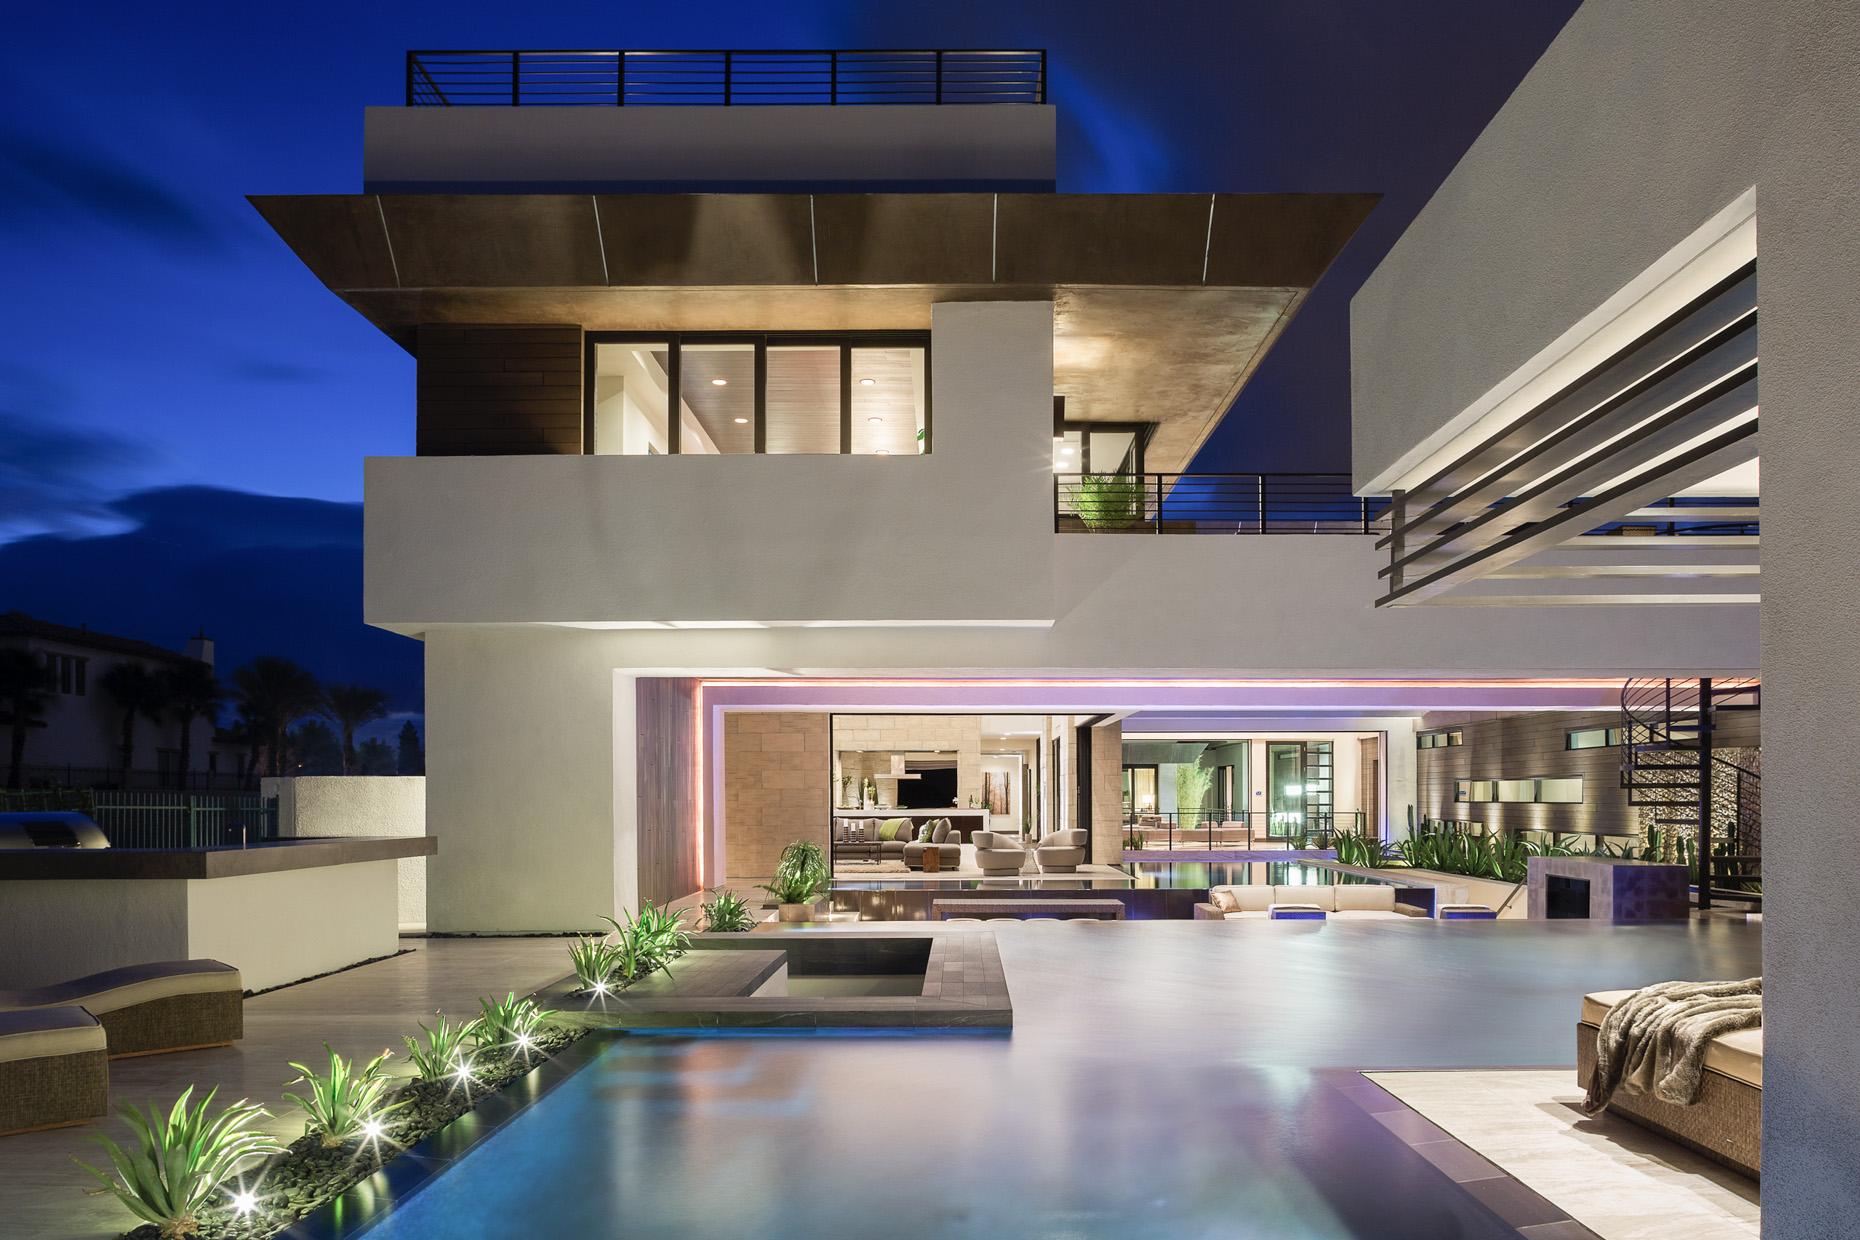 Las Vegas House with Pool